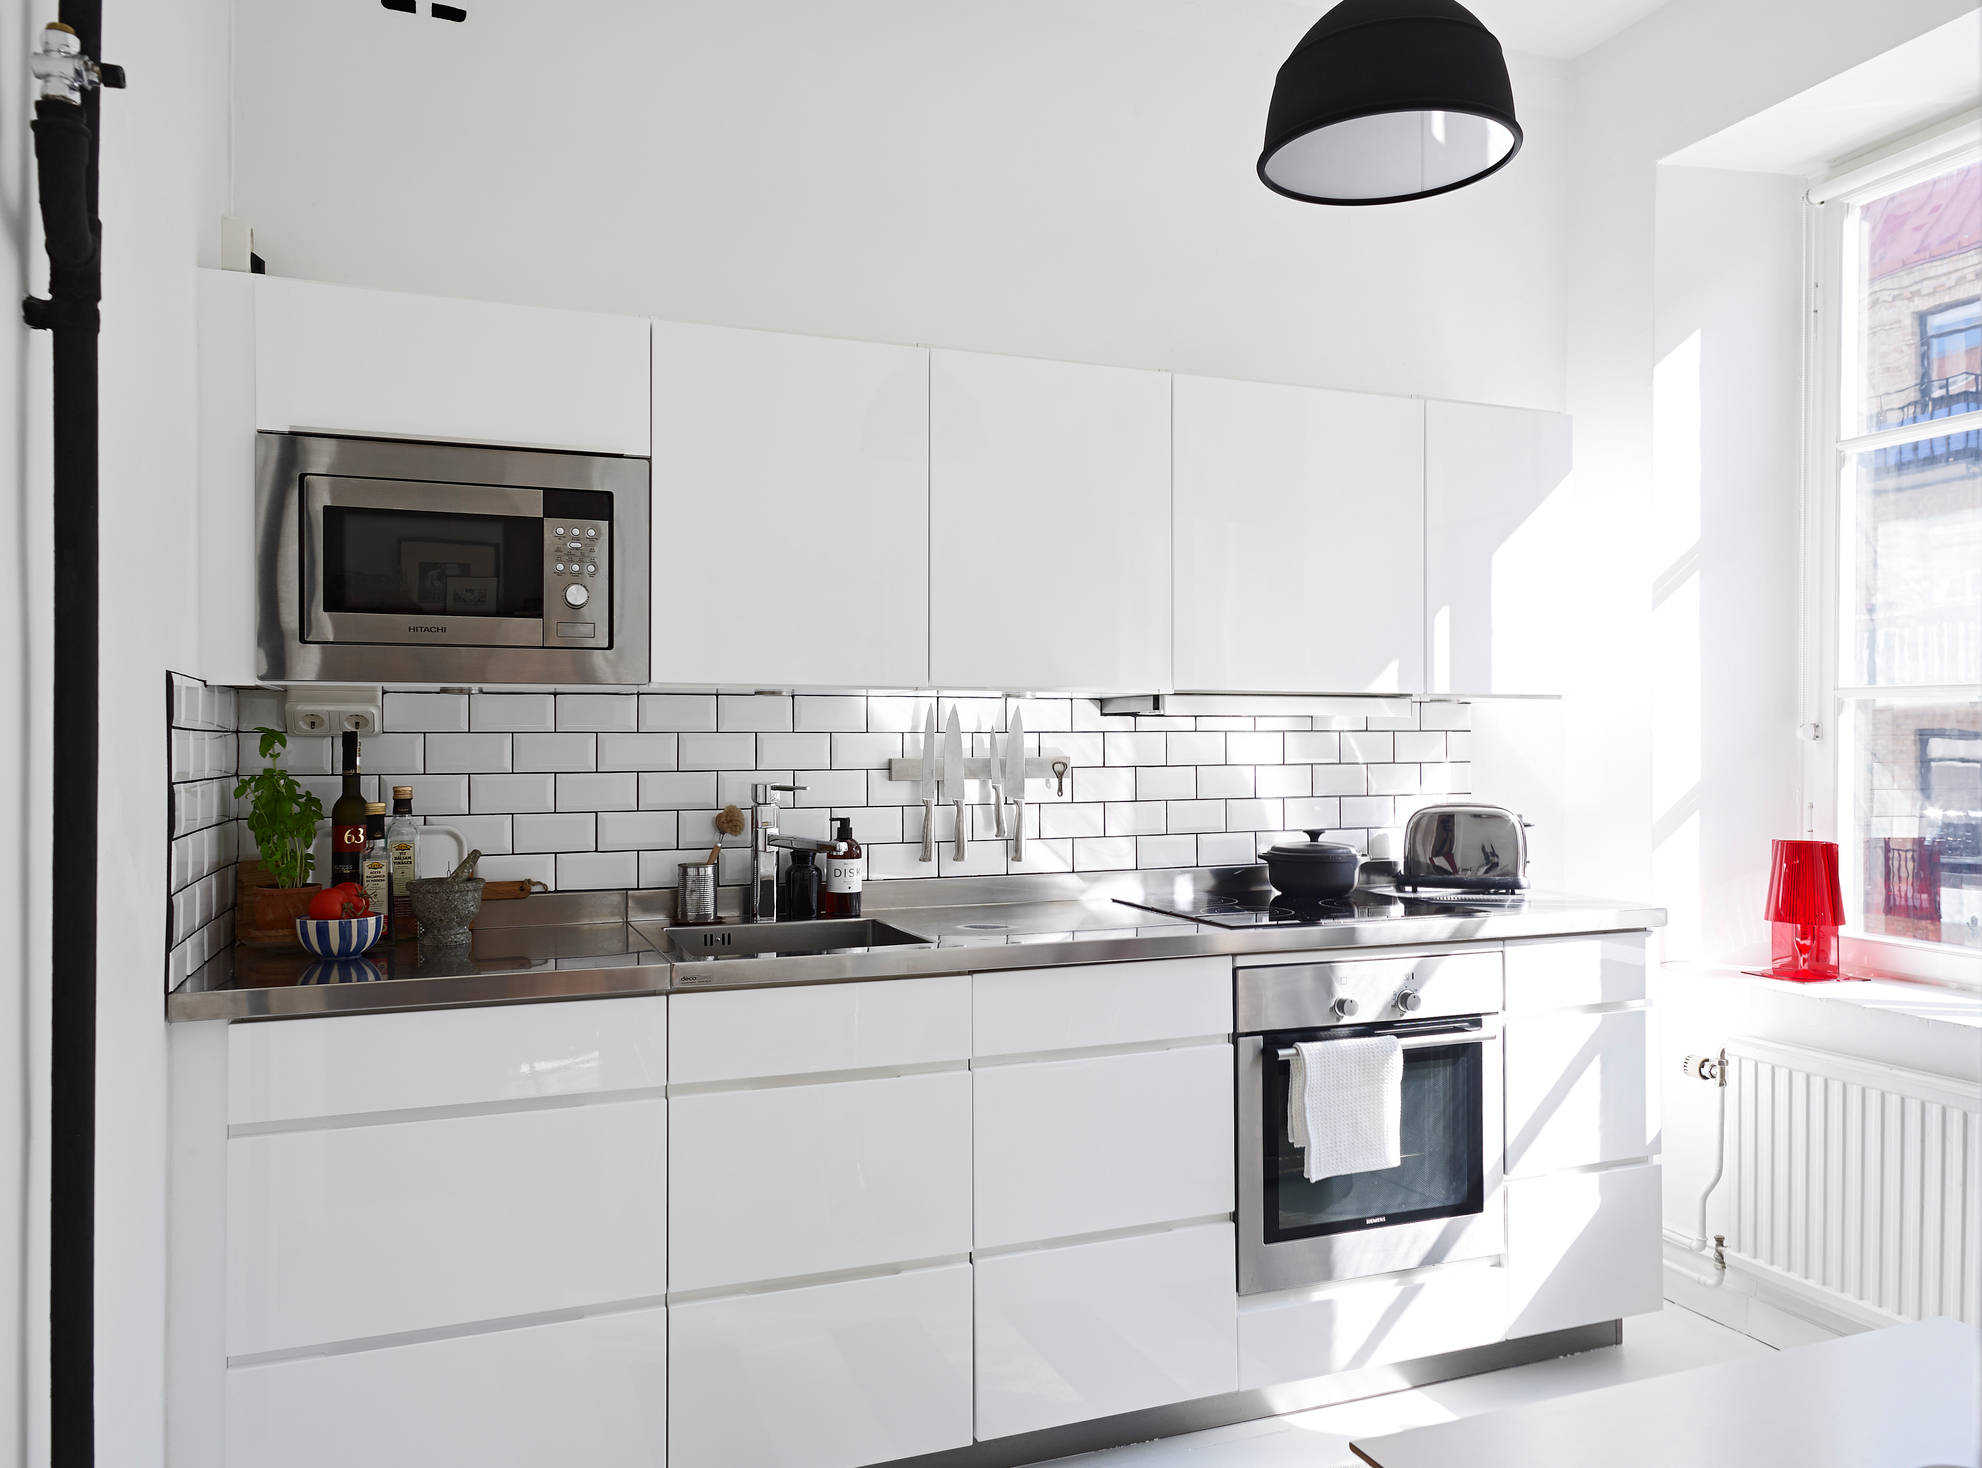 Kitchen subway tiles are back in style 50 inspiring designs dailygadgetfo Image collections